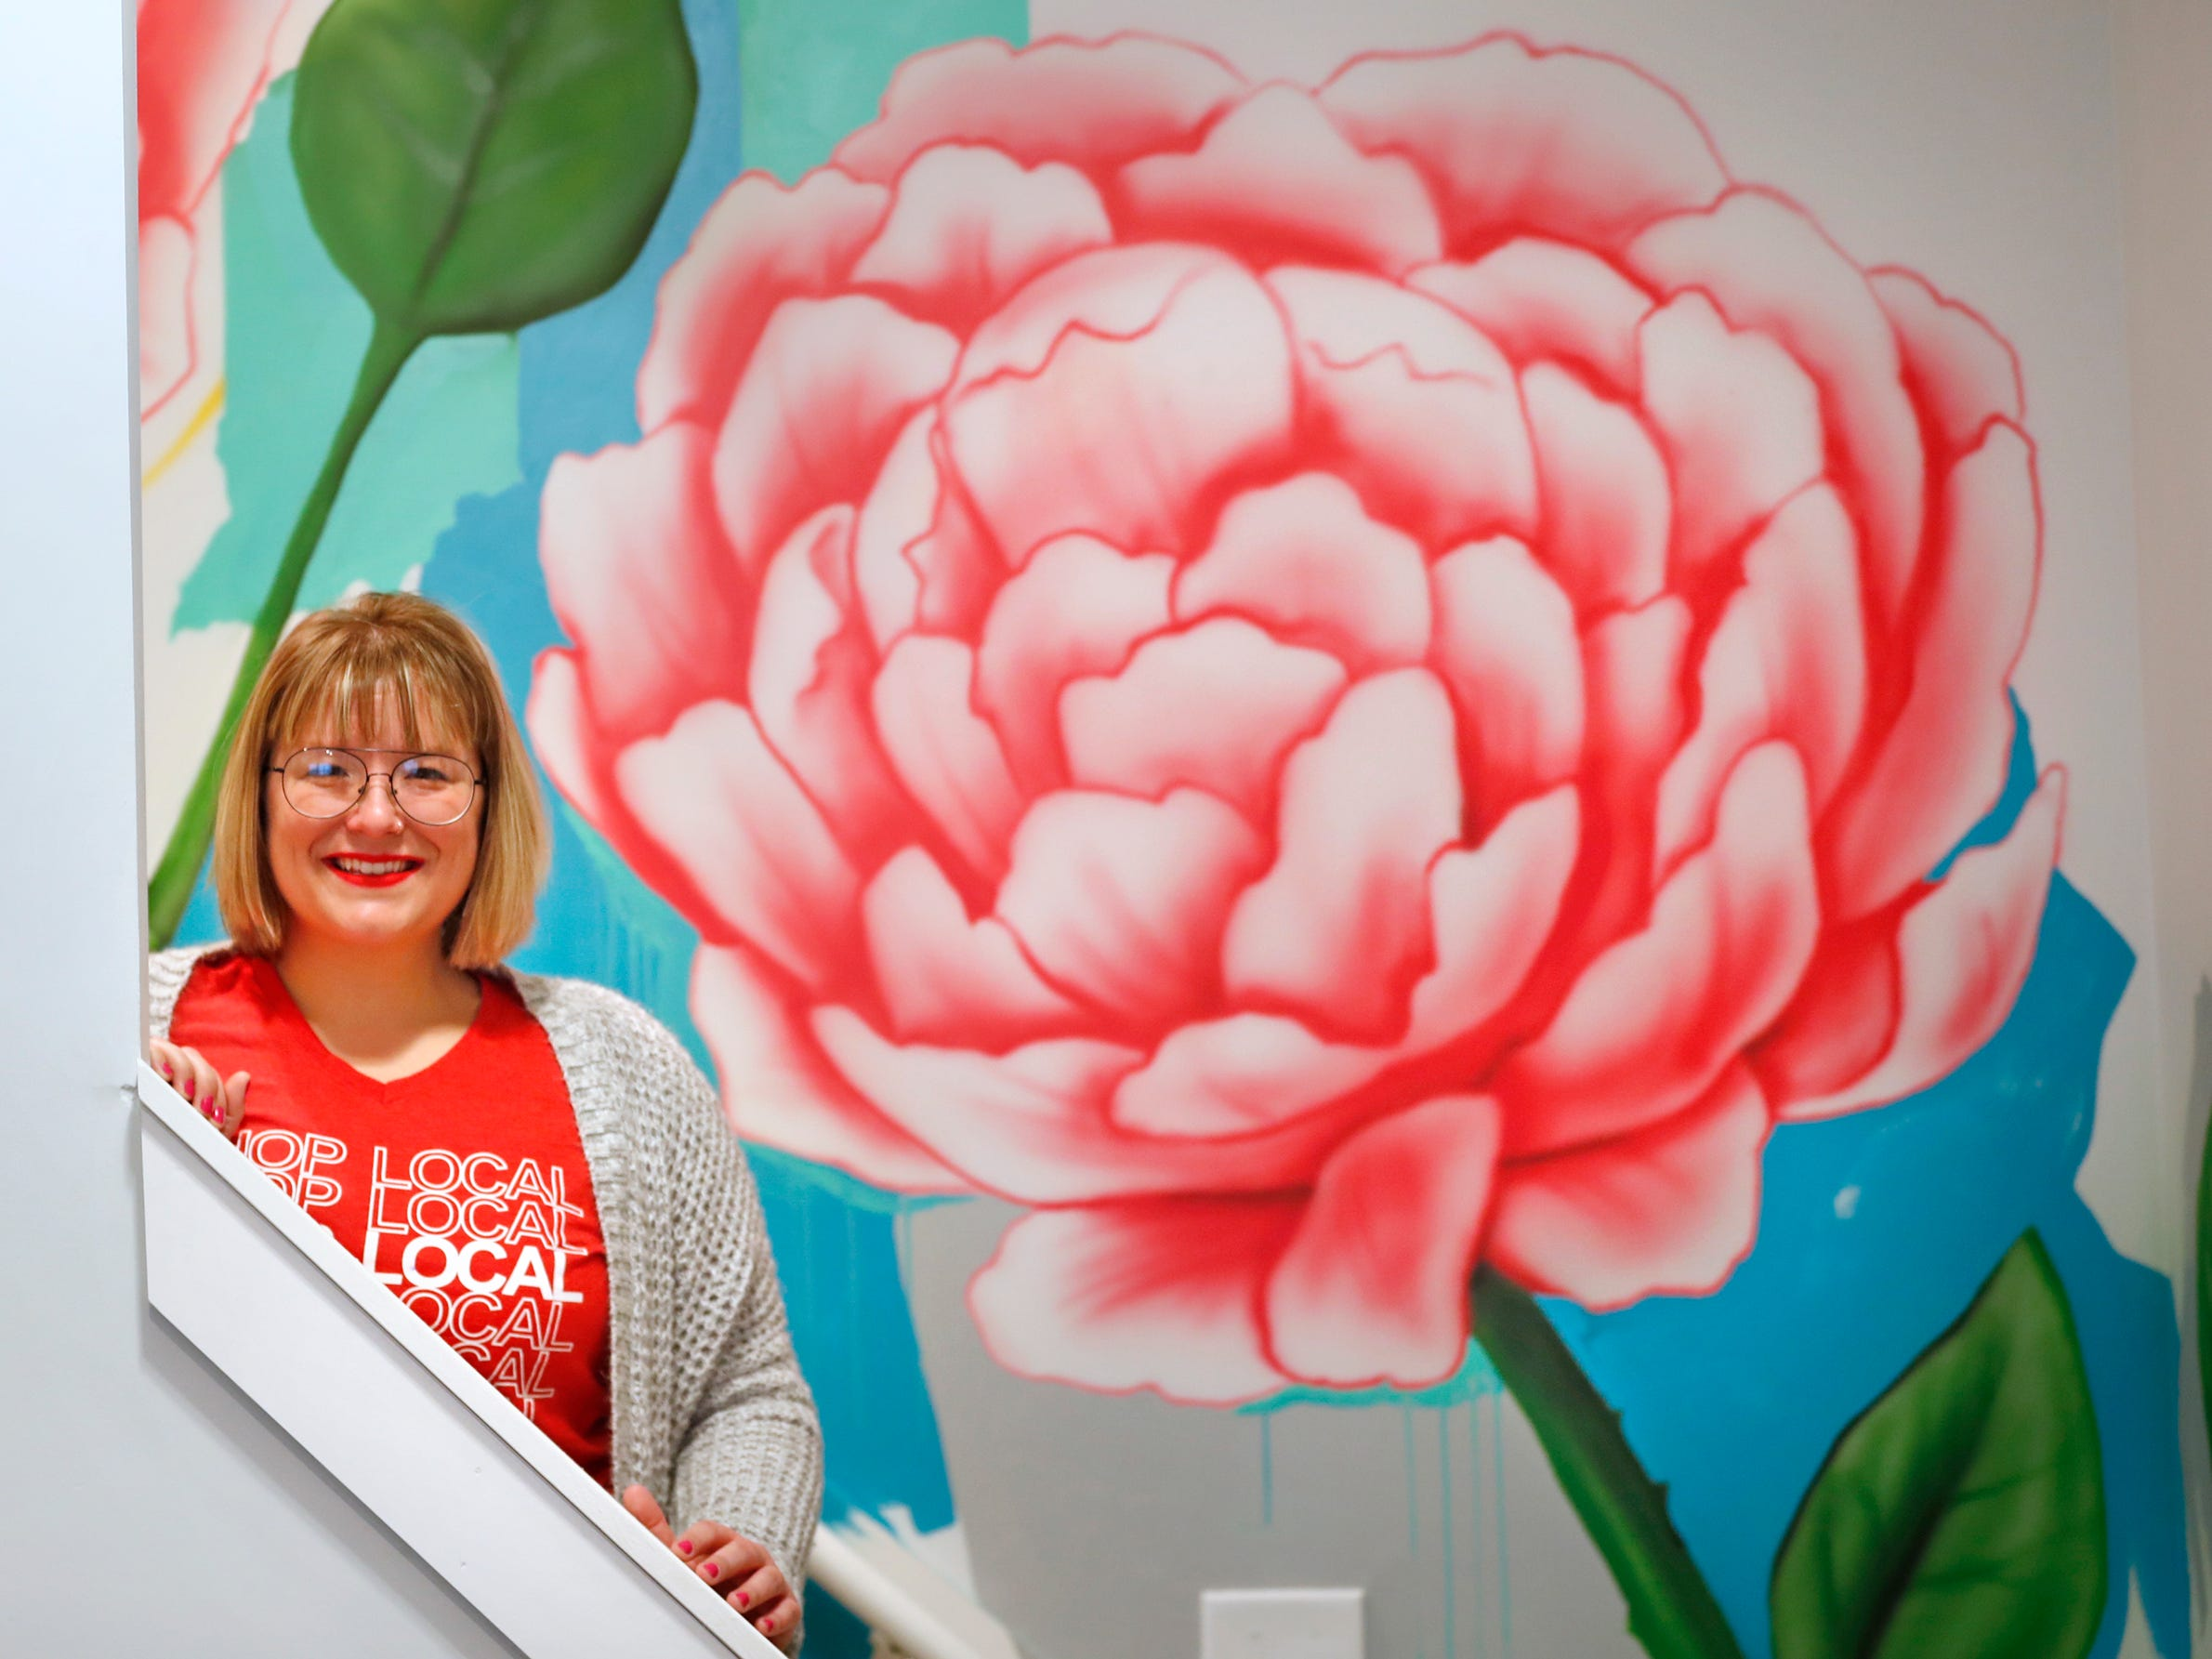 AirBnb owner Felicia Kiesel loves Indianapolis and uses items throughout the rental that remember the city, at 804 N. Keystone Ave., Monday, Dec. 3, 2018, including this mural with the state bird and flower, right, the peony.